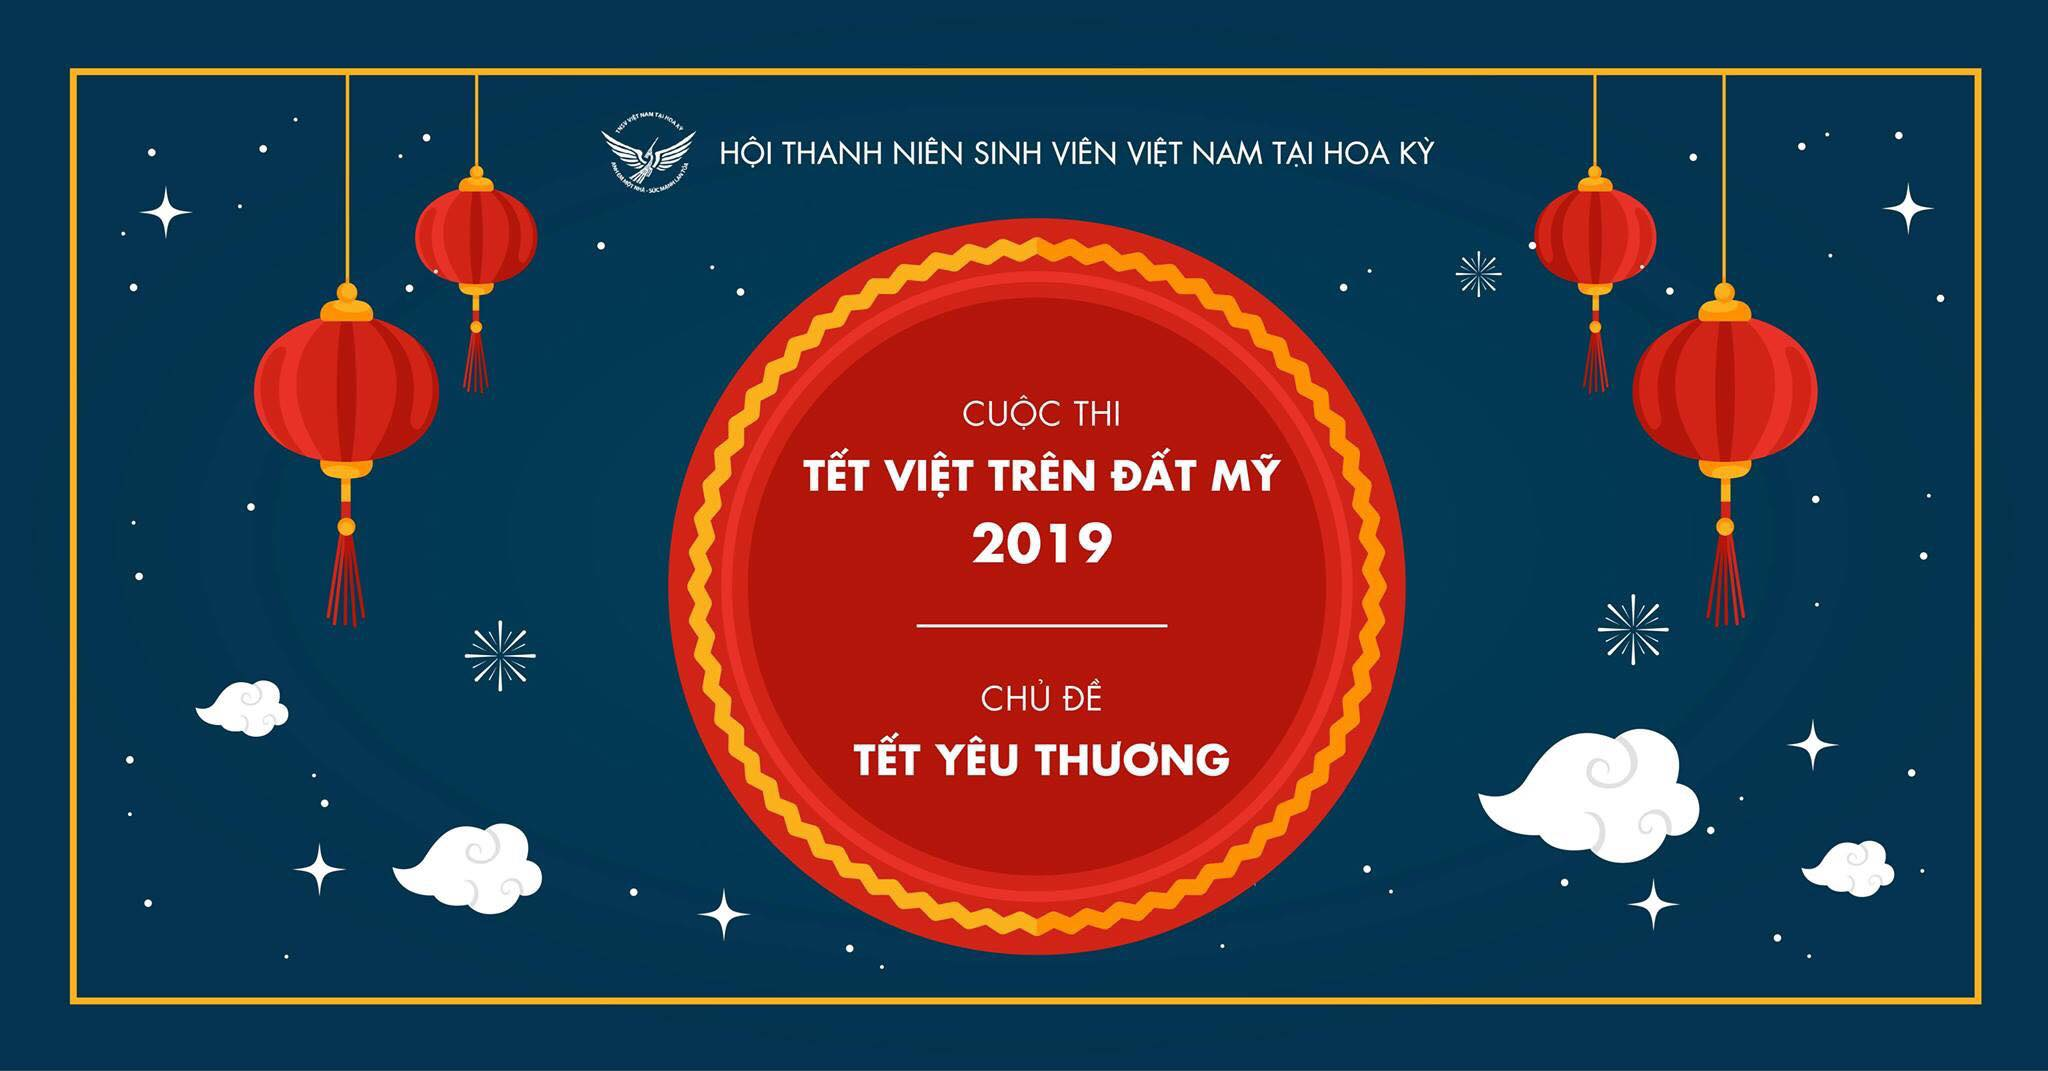 "THÔNG BÁO KẾT QUẢ CUỘC THI TẾT VIỆT TRÊN ĐẤT MỸ 2019 ""TẾT YÊU THƯƠNG"""